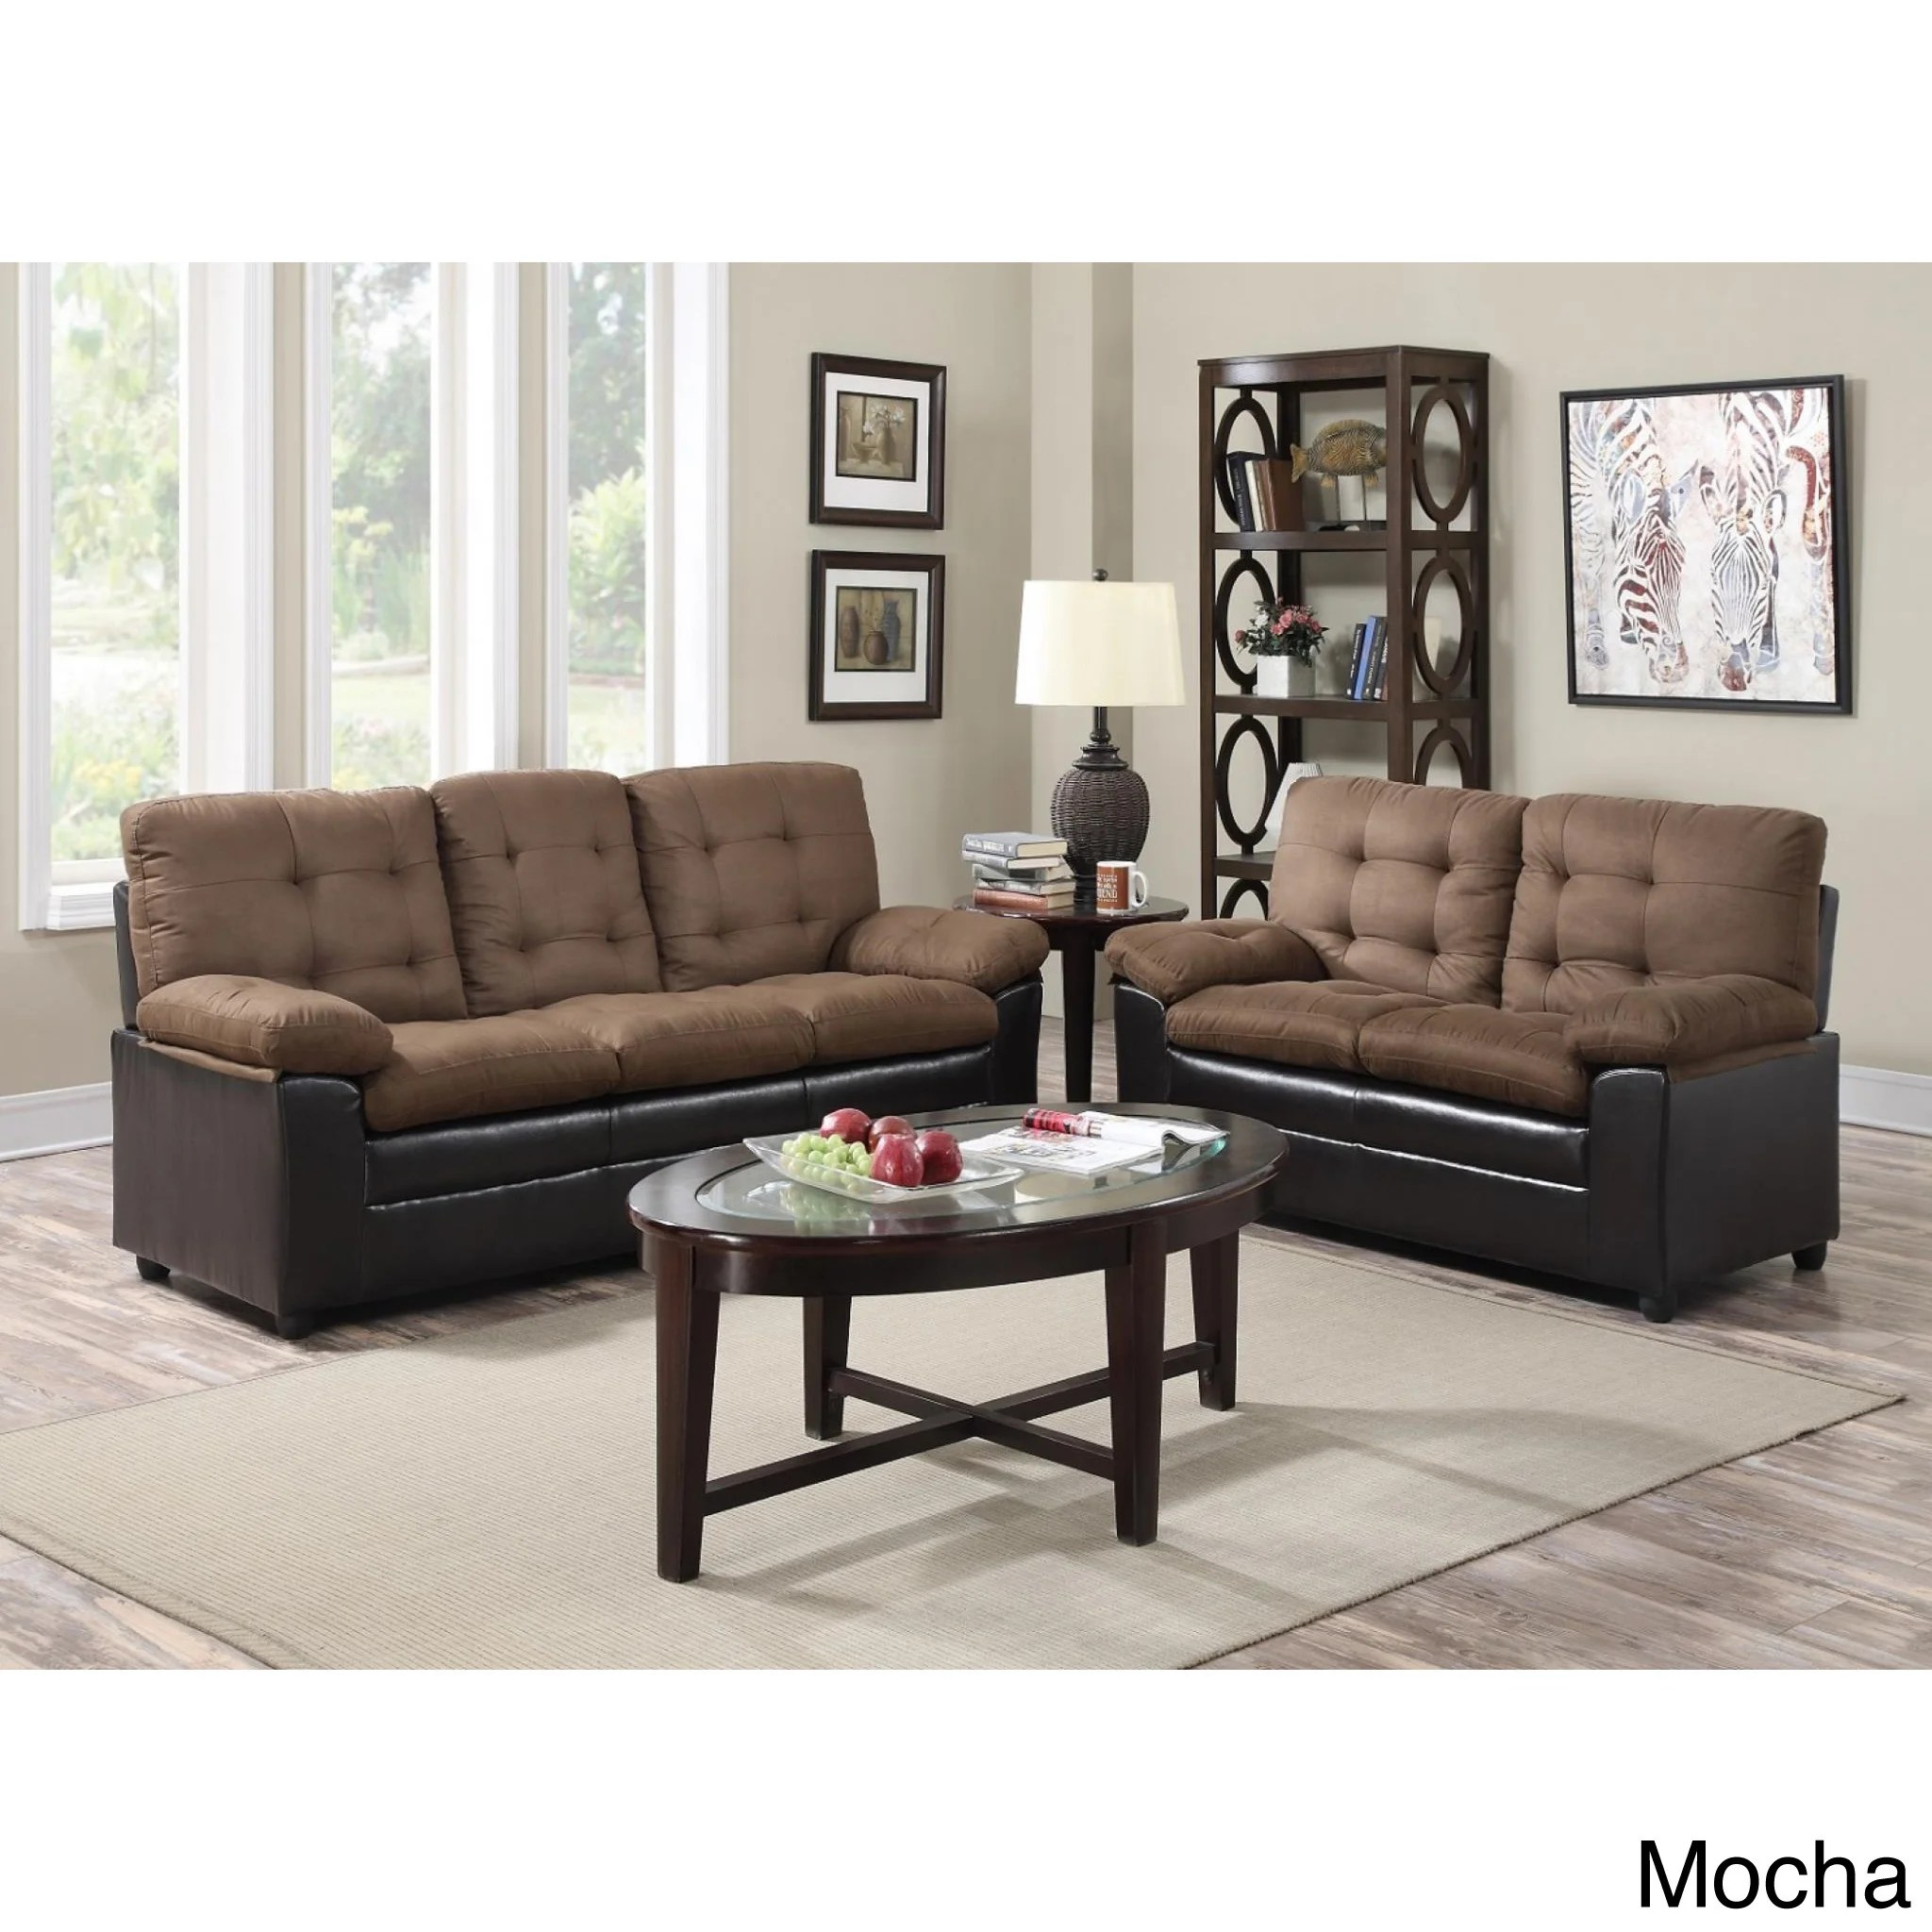 Cheap Furniture Baltimore Two Tone Microfiber Sofa And Loveseat Set Ebay